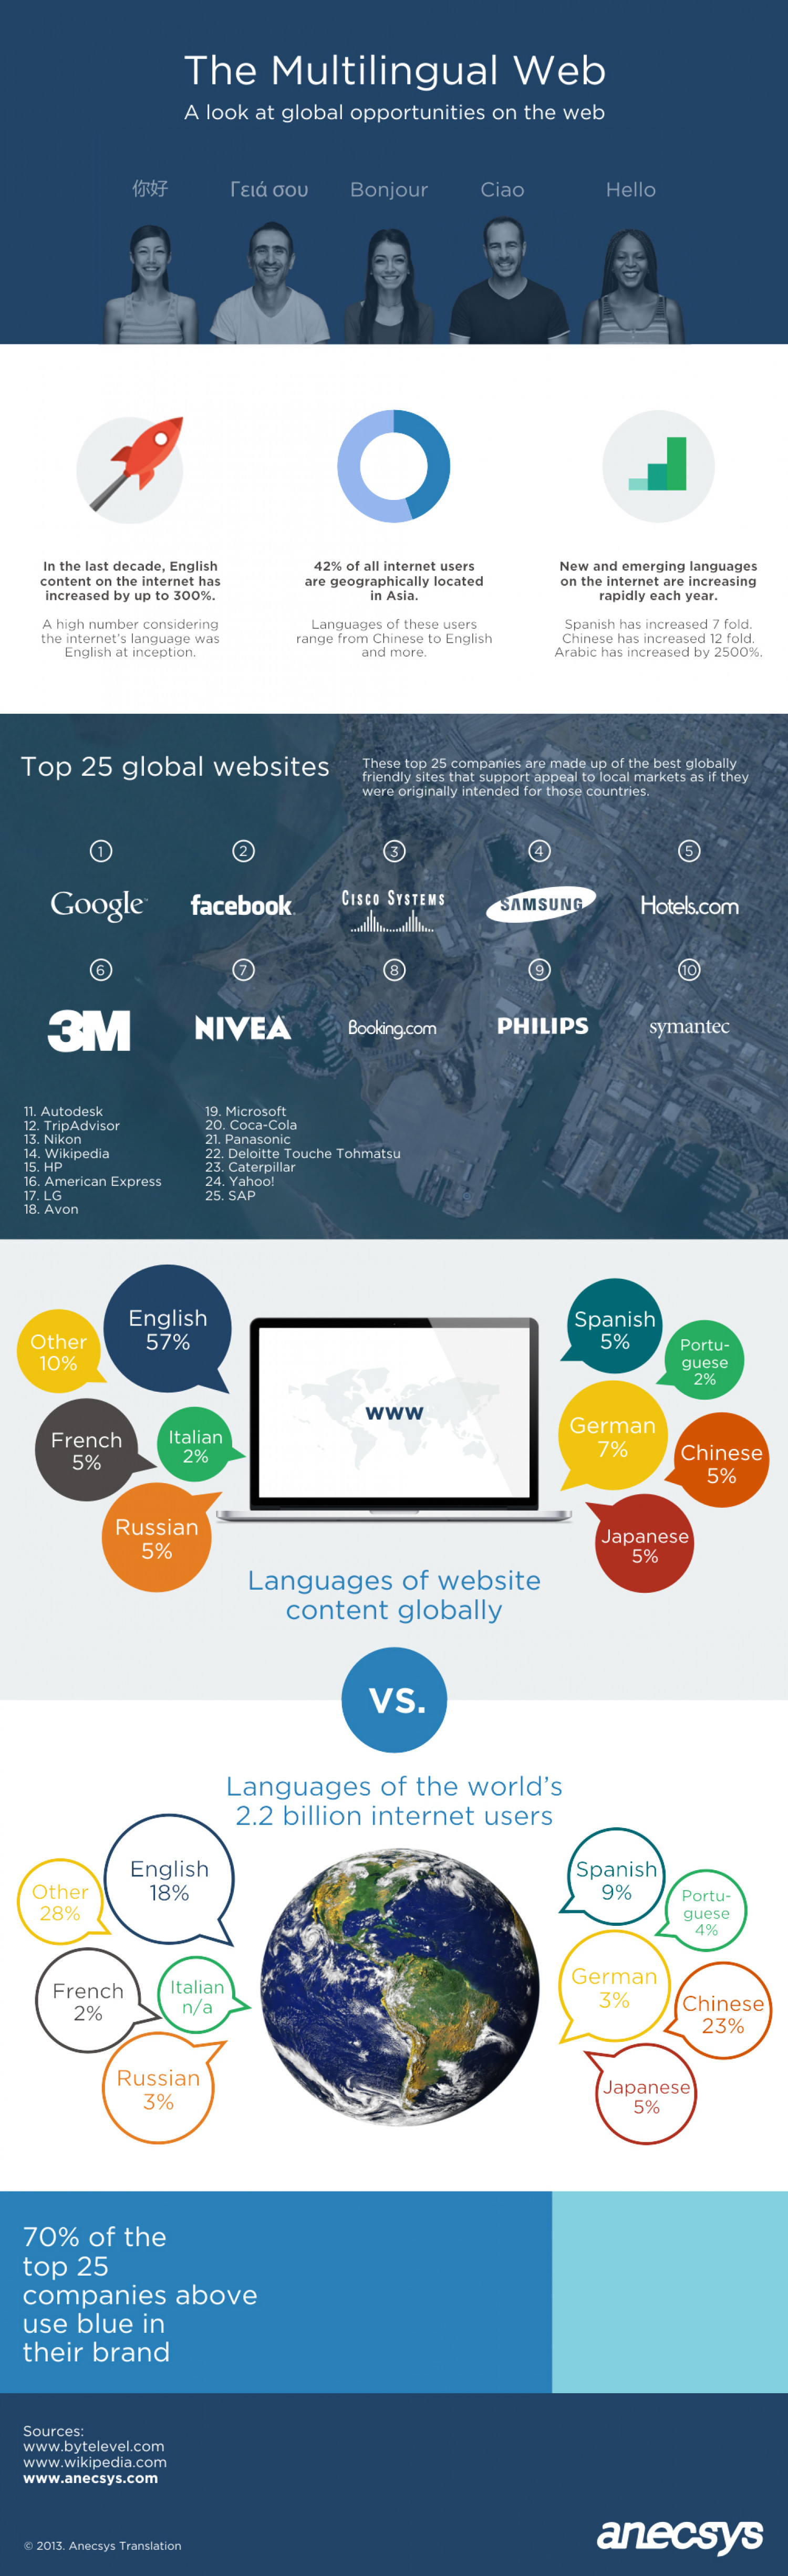 The Multilingual Web Infographic